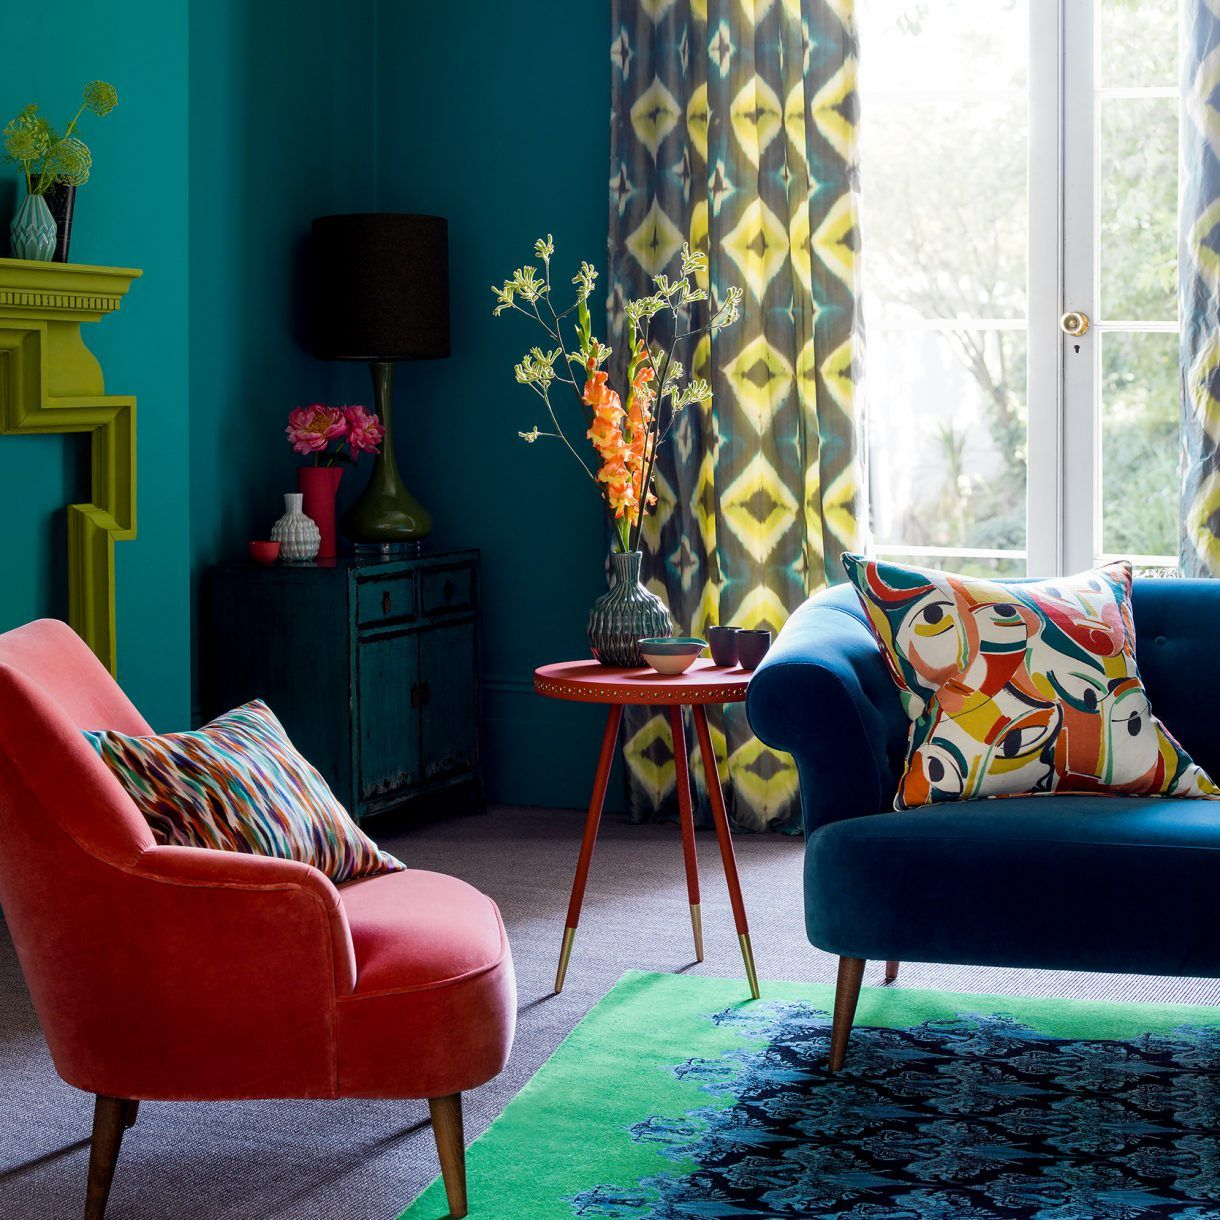 Living Room Colour Schemes Decor Ideas In Every Shade That Are Brimming With Character And Style Living Room Color Living Room Color Schemes Living Room Red